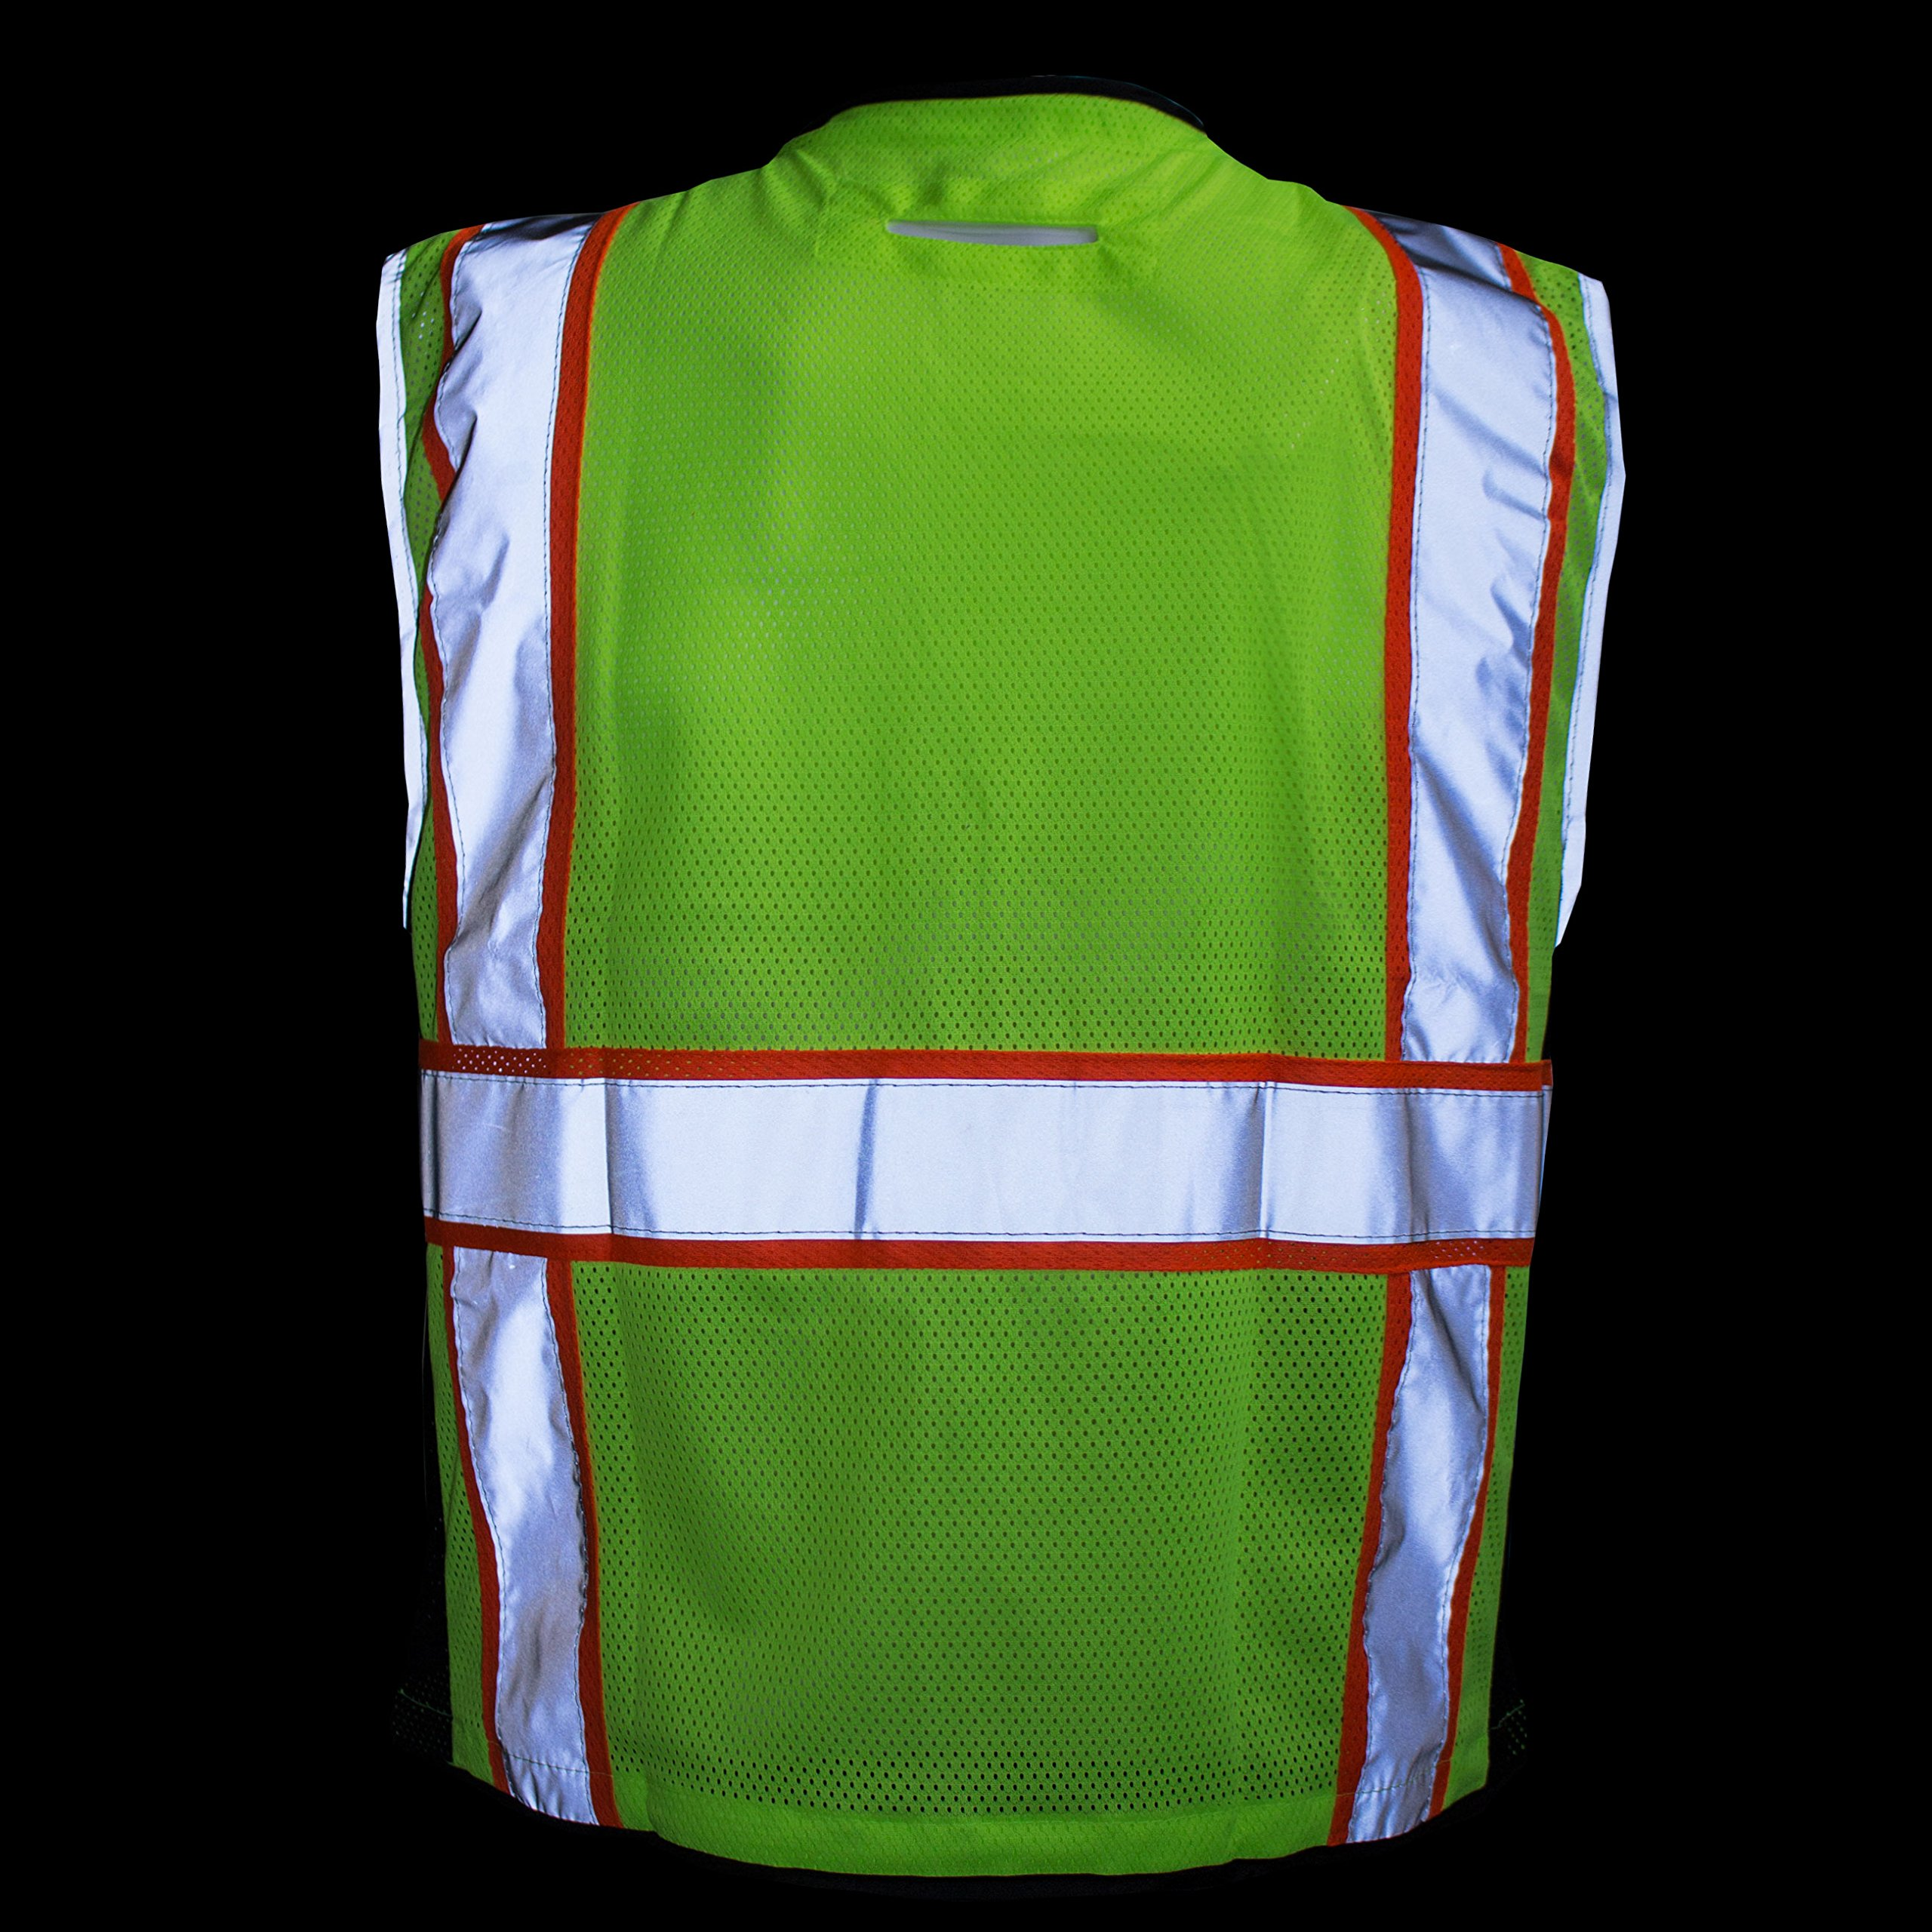 RK Safety P6612 Class 2 High Visible Two Tone Reflective Strips Breathable Mesh Vest, Pockets Harness D-Ring Pass Thru, ANSI/ISEA, Construction Motorcycle Traffic Emergency (Lime, Medium) by New York Hi-Viz Workwear (Image #8)